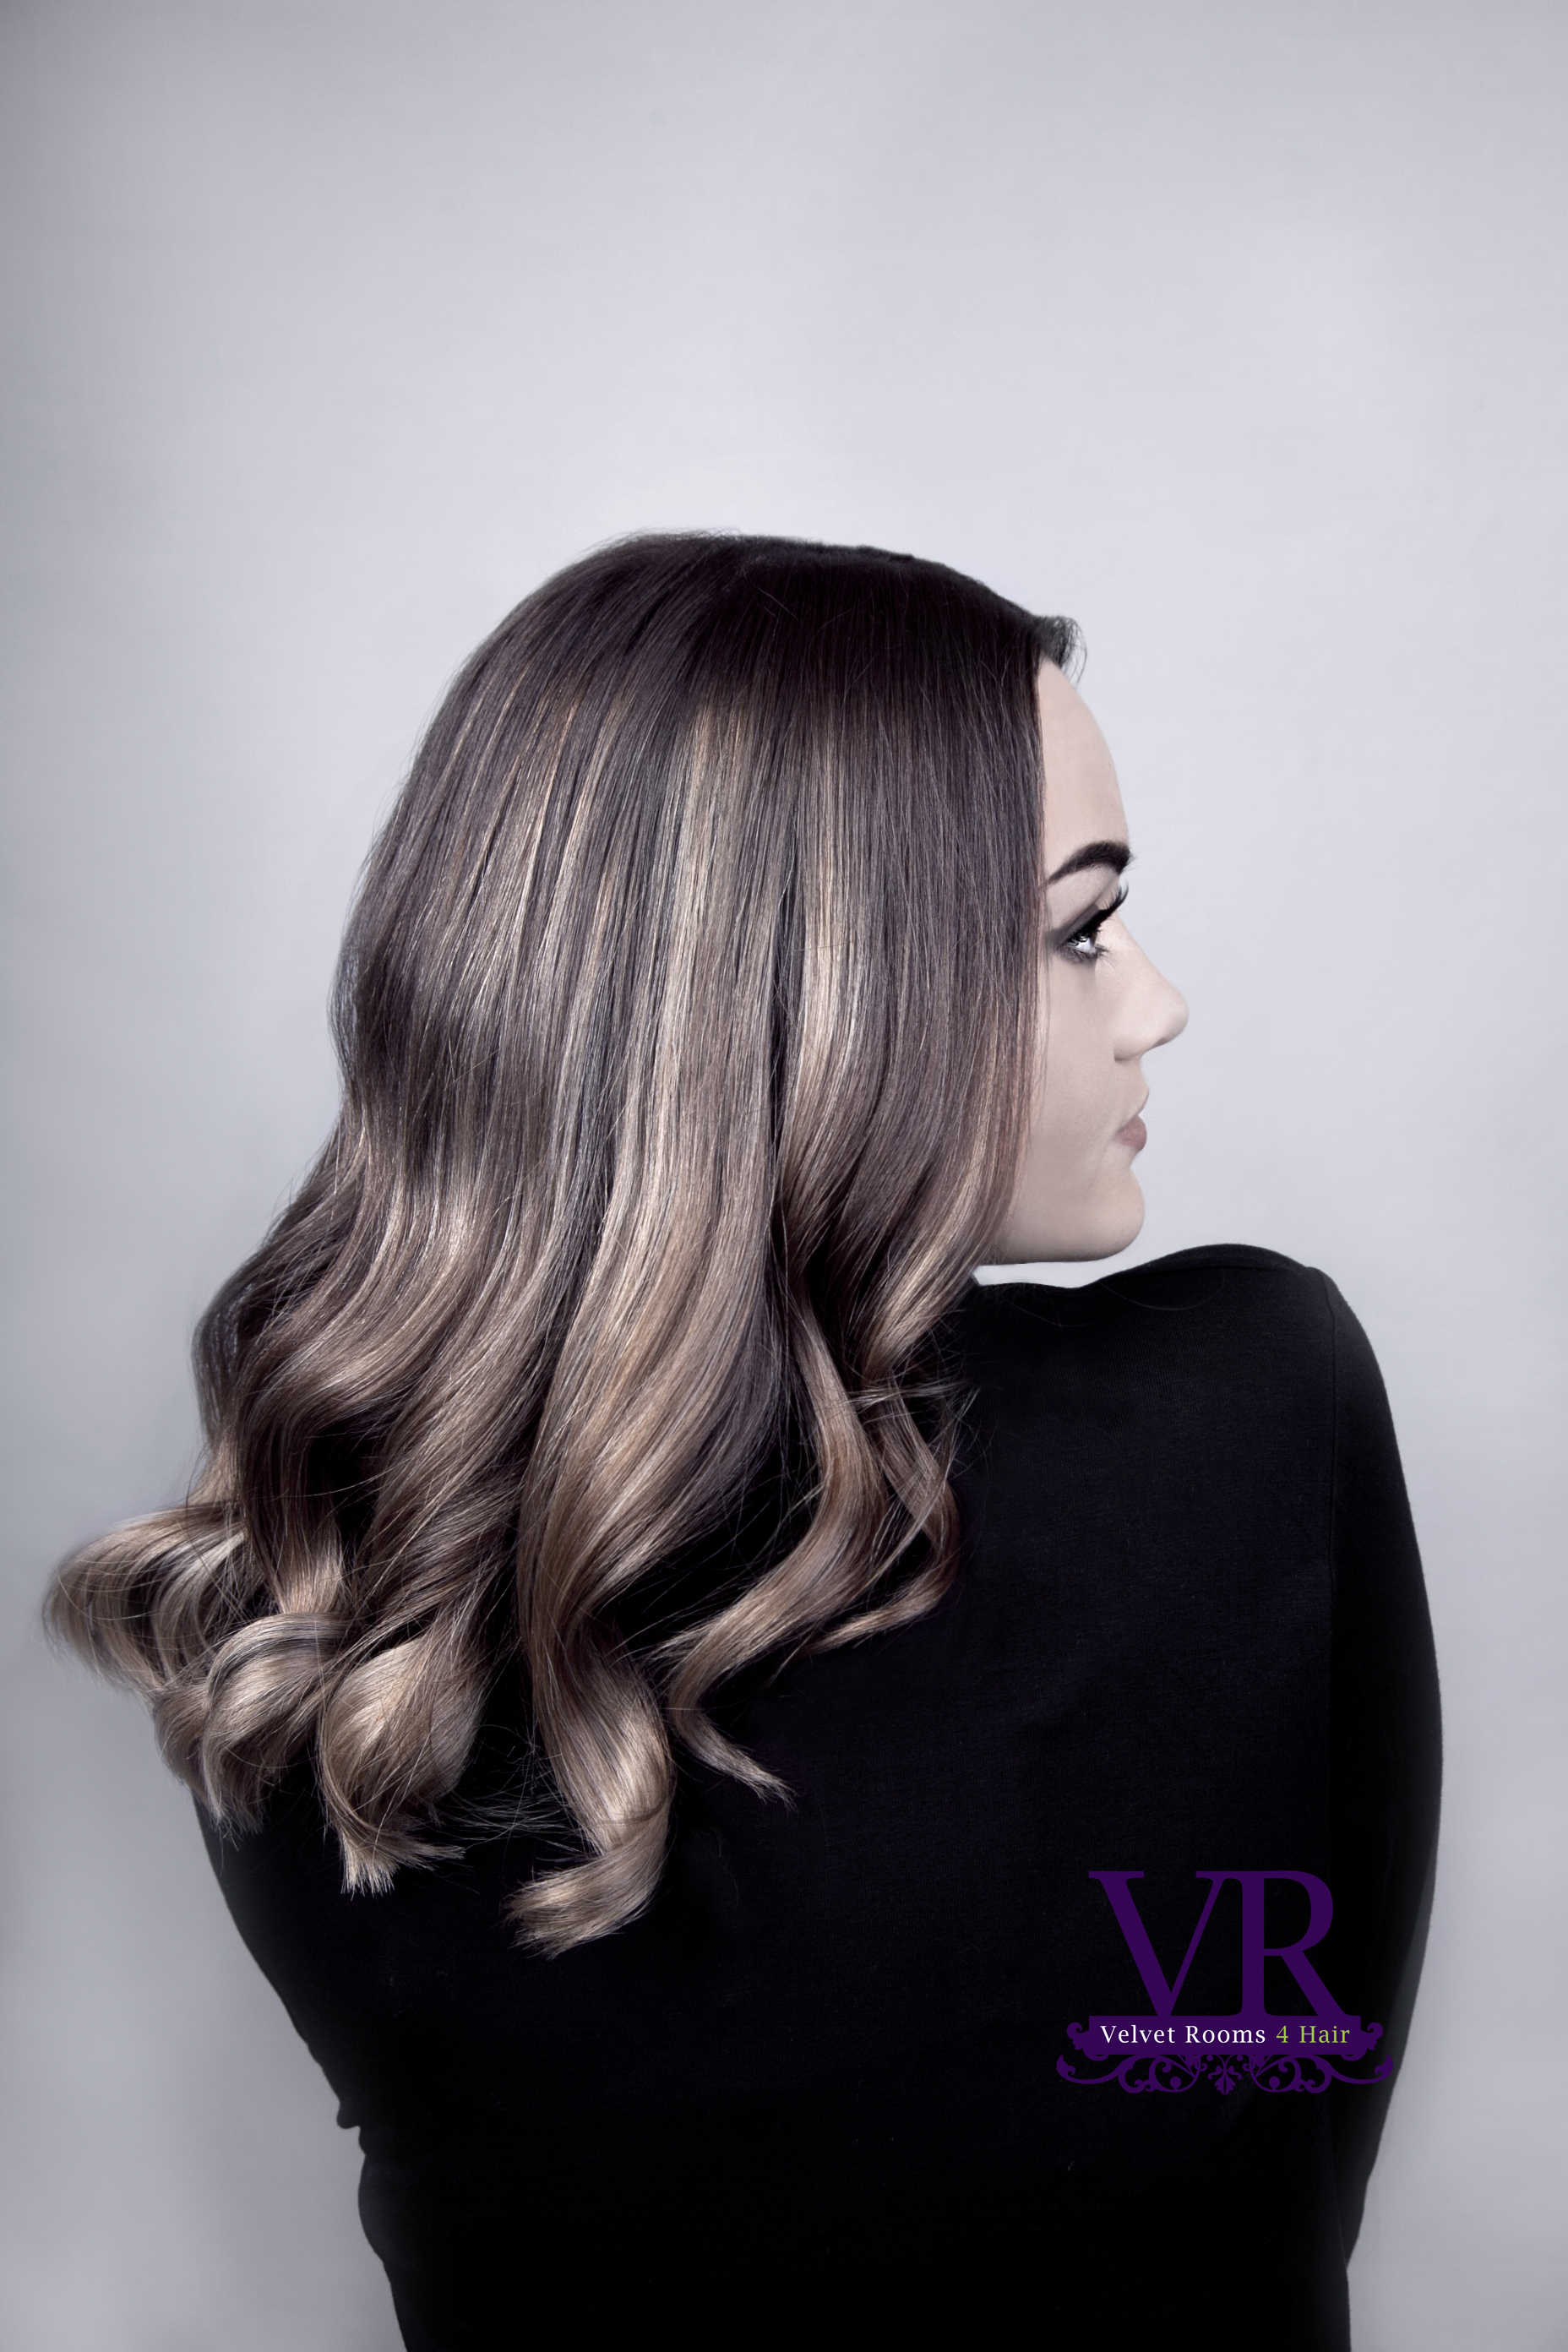 Velvet Rooms - Long dark soft curled hair